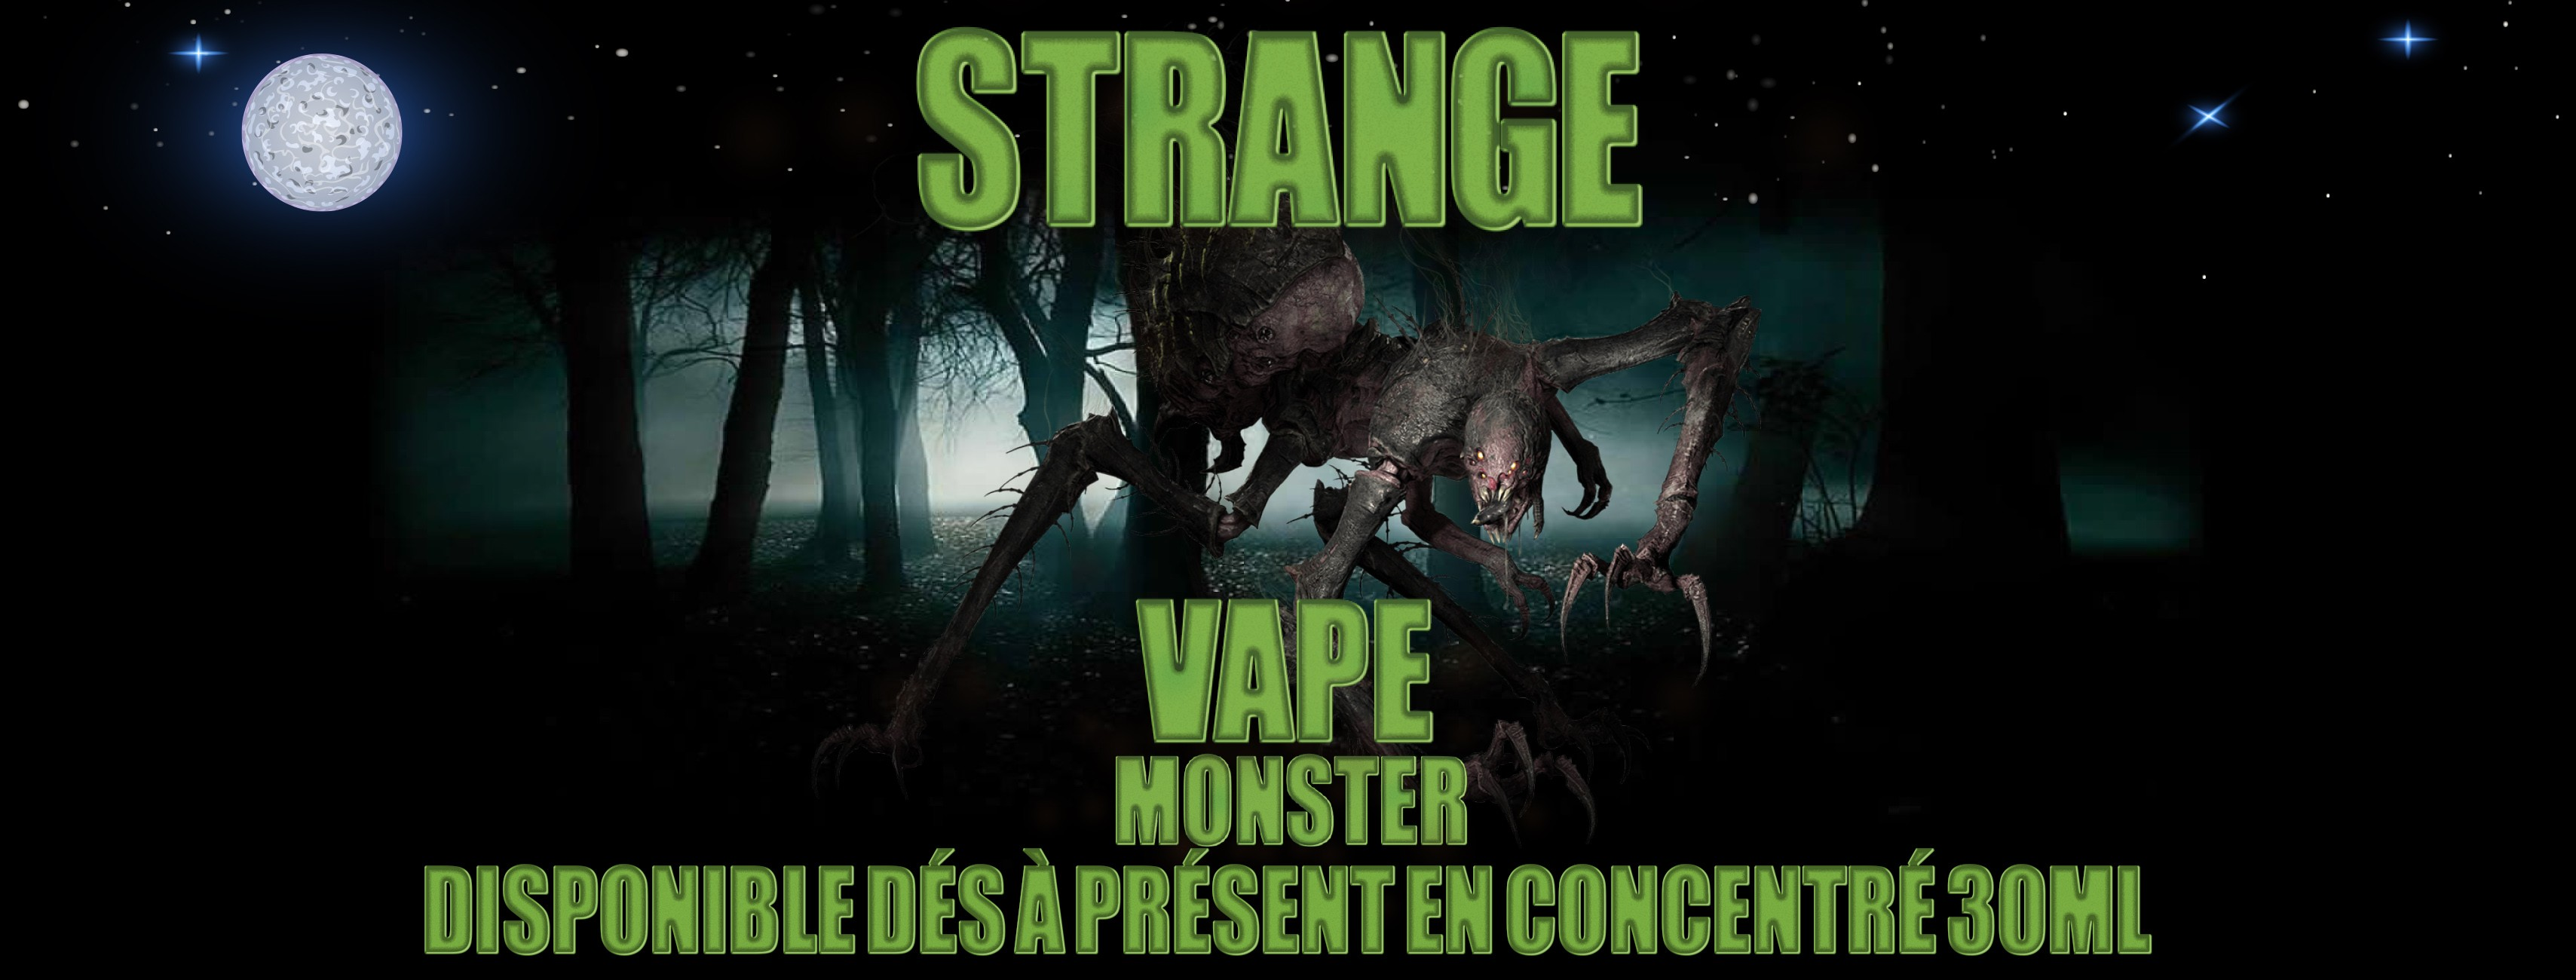 Stranger Vape Monster